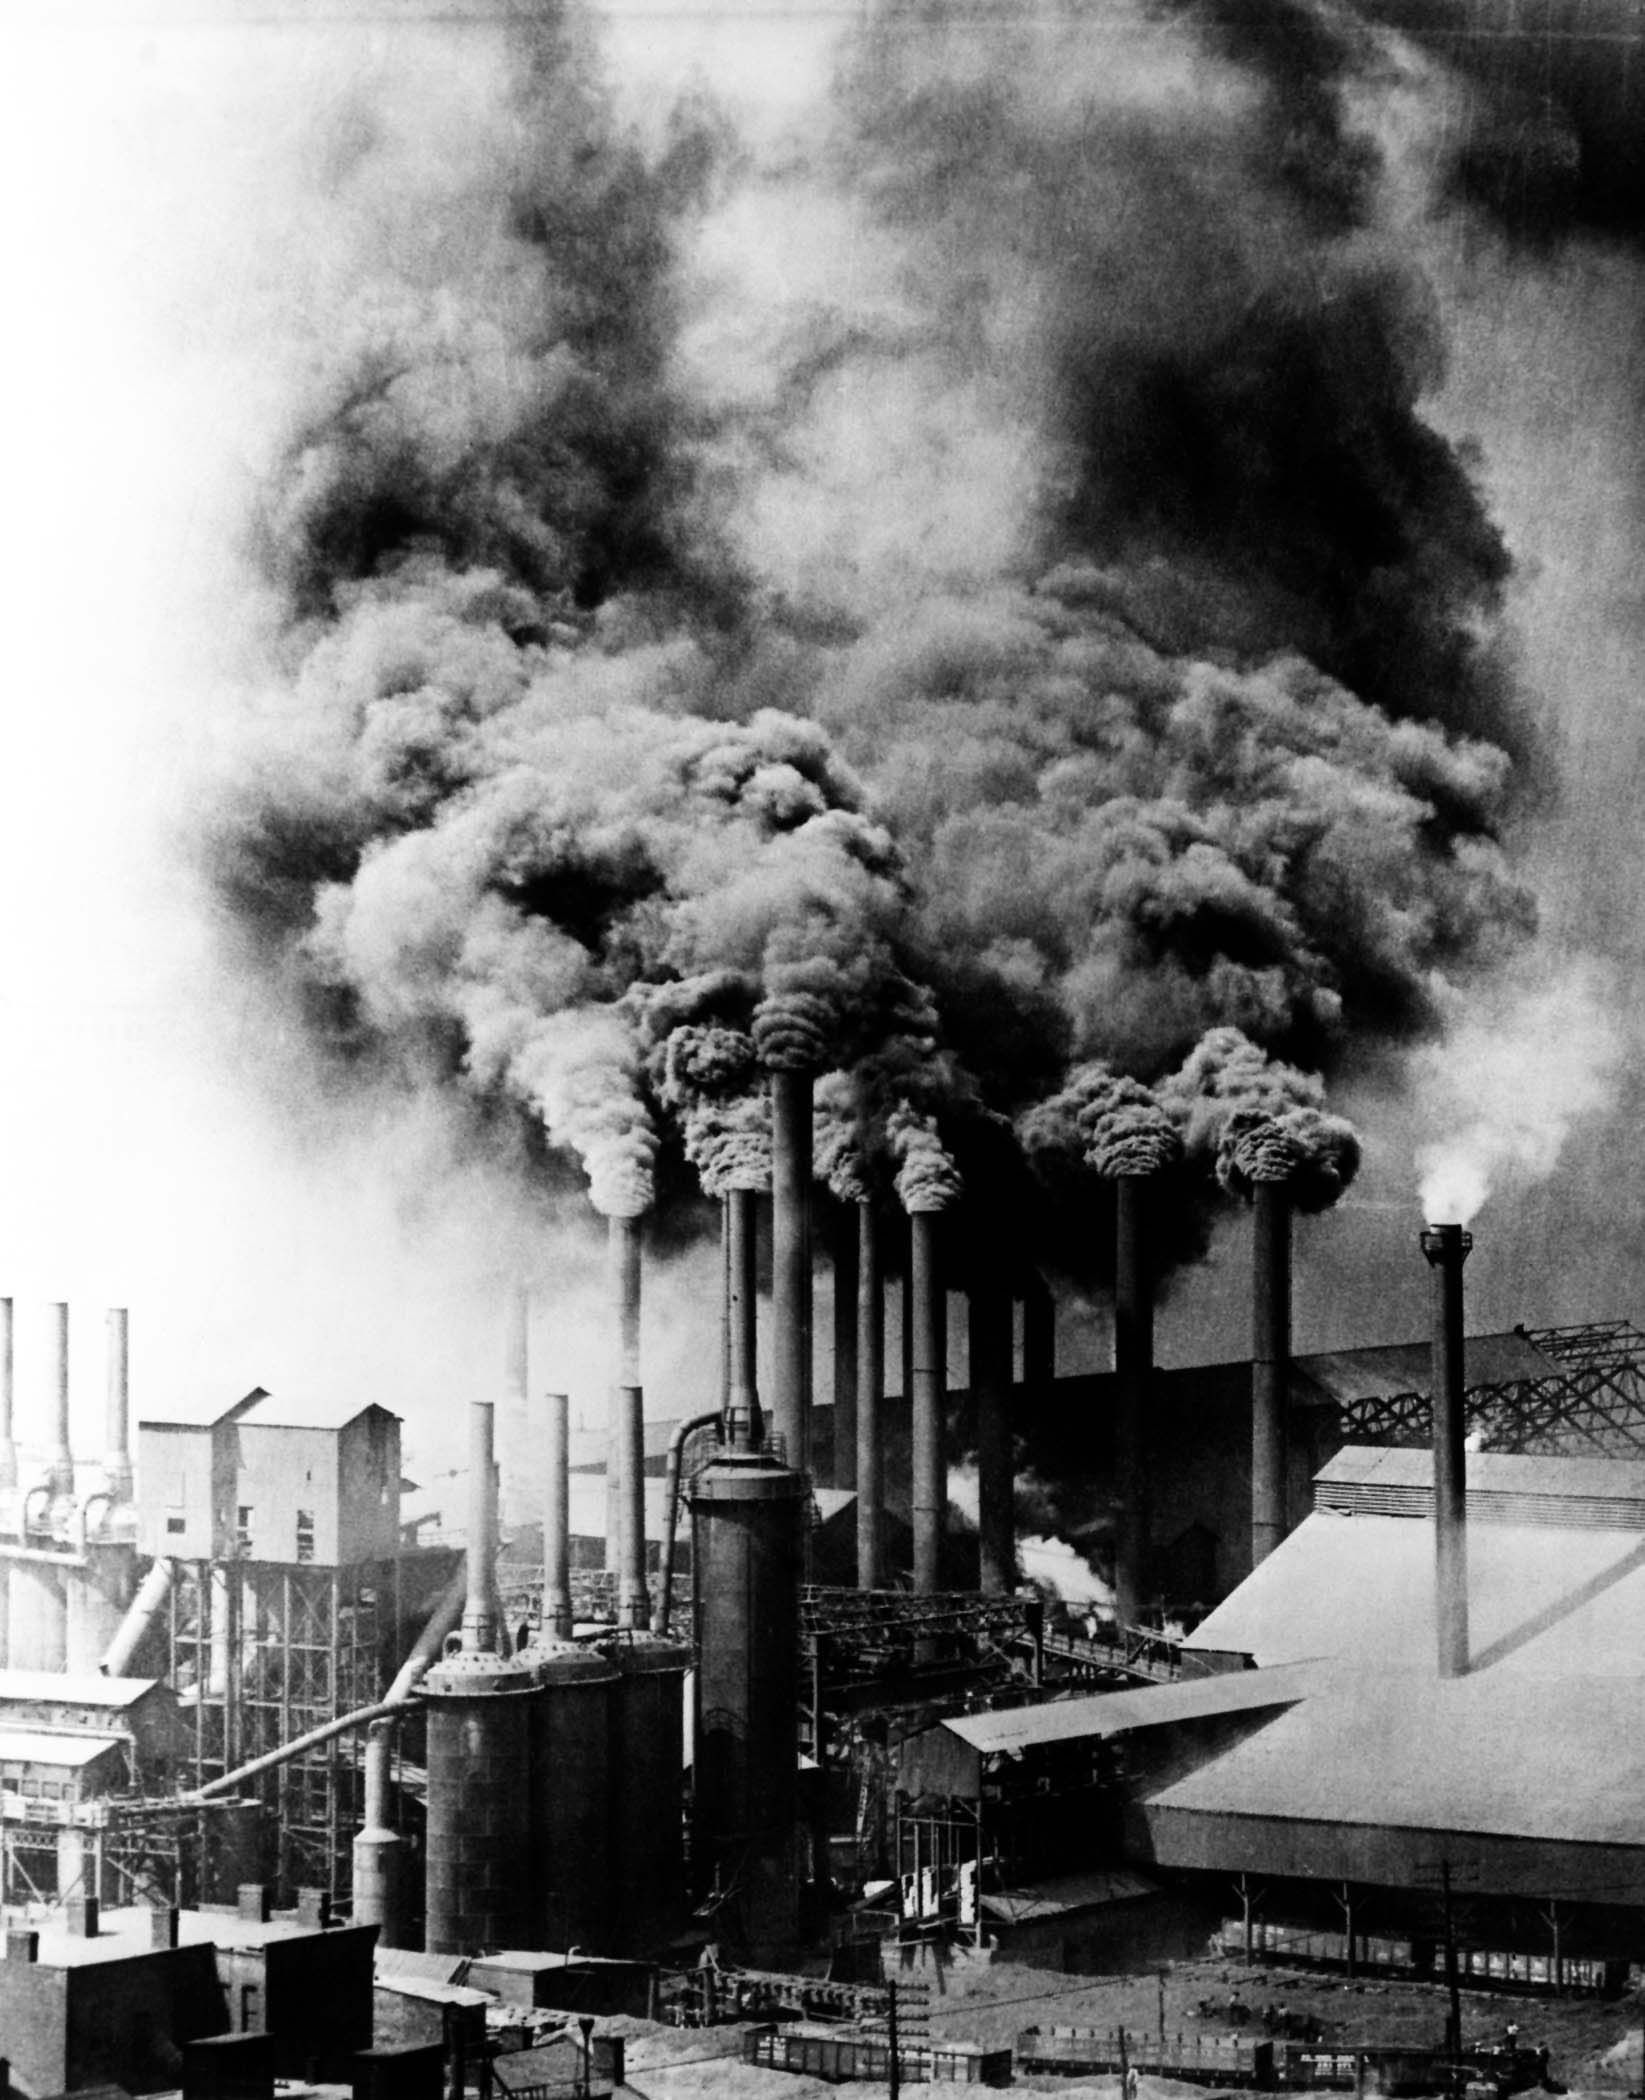 smoke pollution produced by pittsburgh factories scientific factories during the industrial revolution gave off many pollutants in the air which made the air bad to breathe this was negative n american society